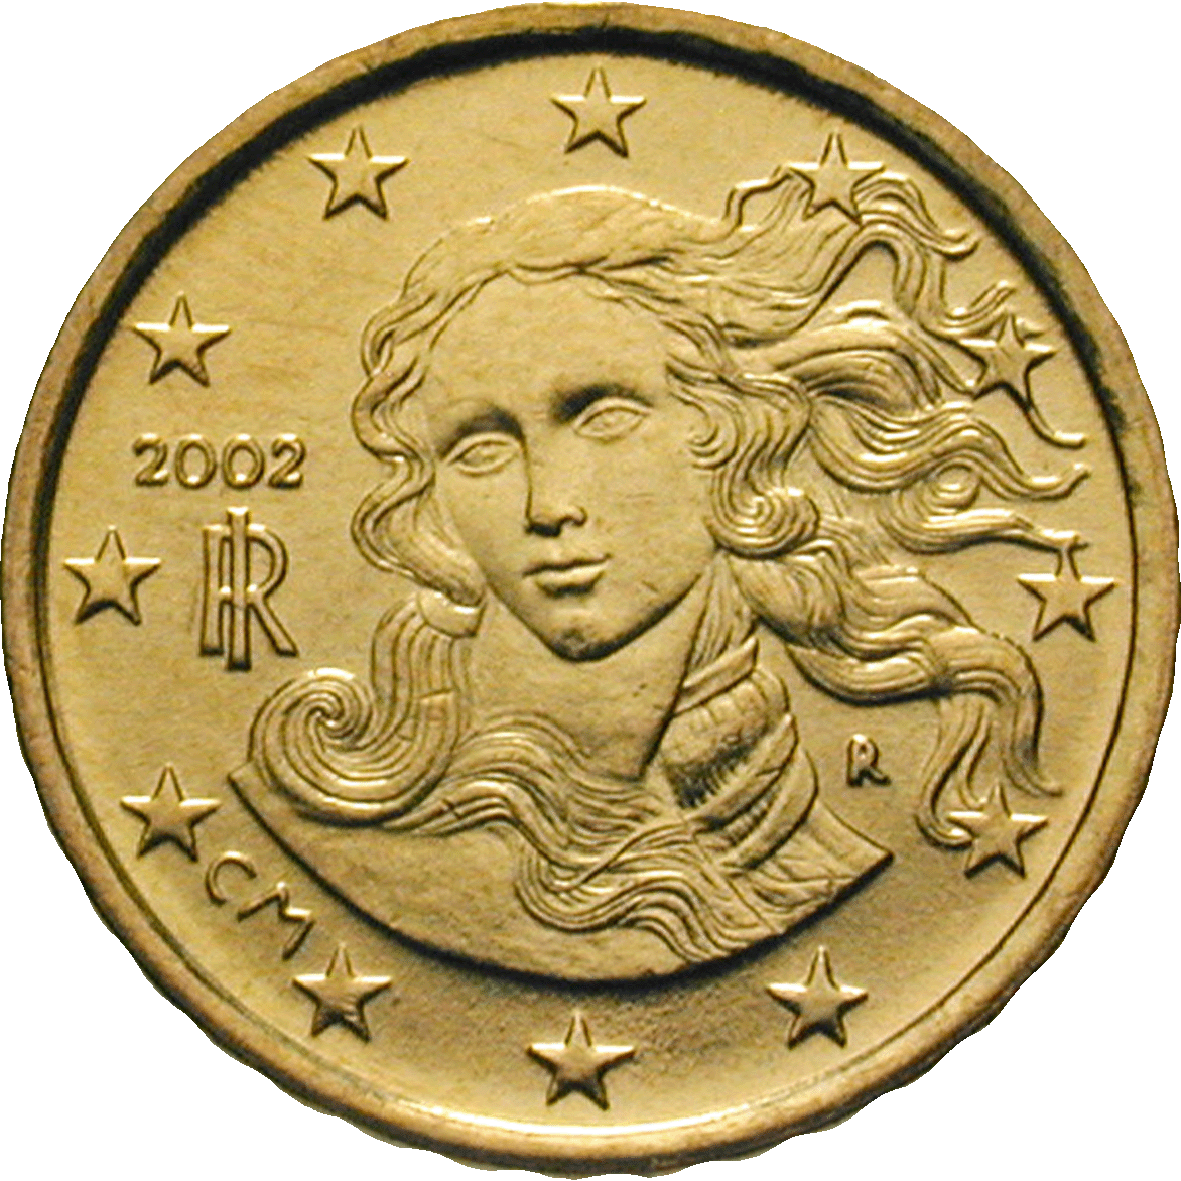 Republik Italien, 10 Eurocent 2002 (reverse)